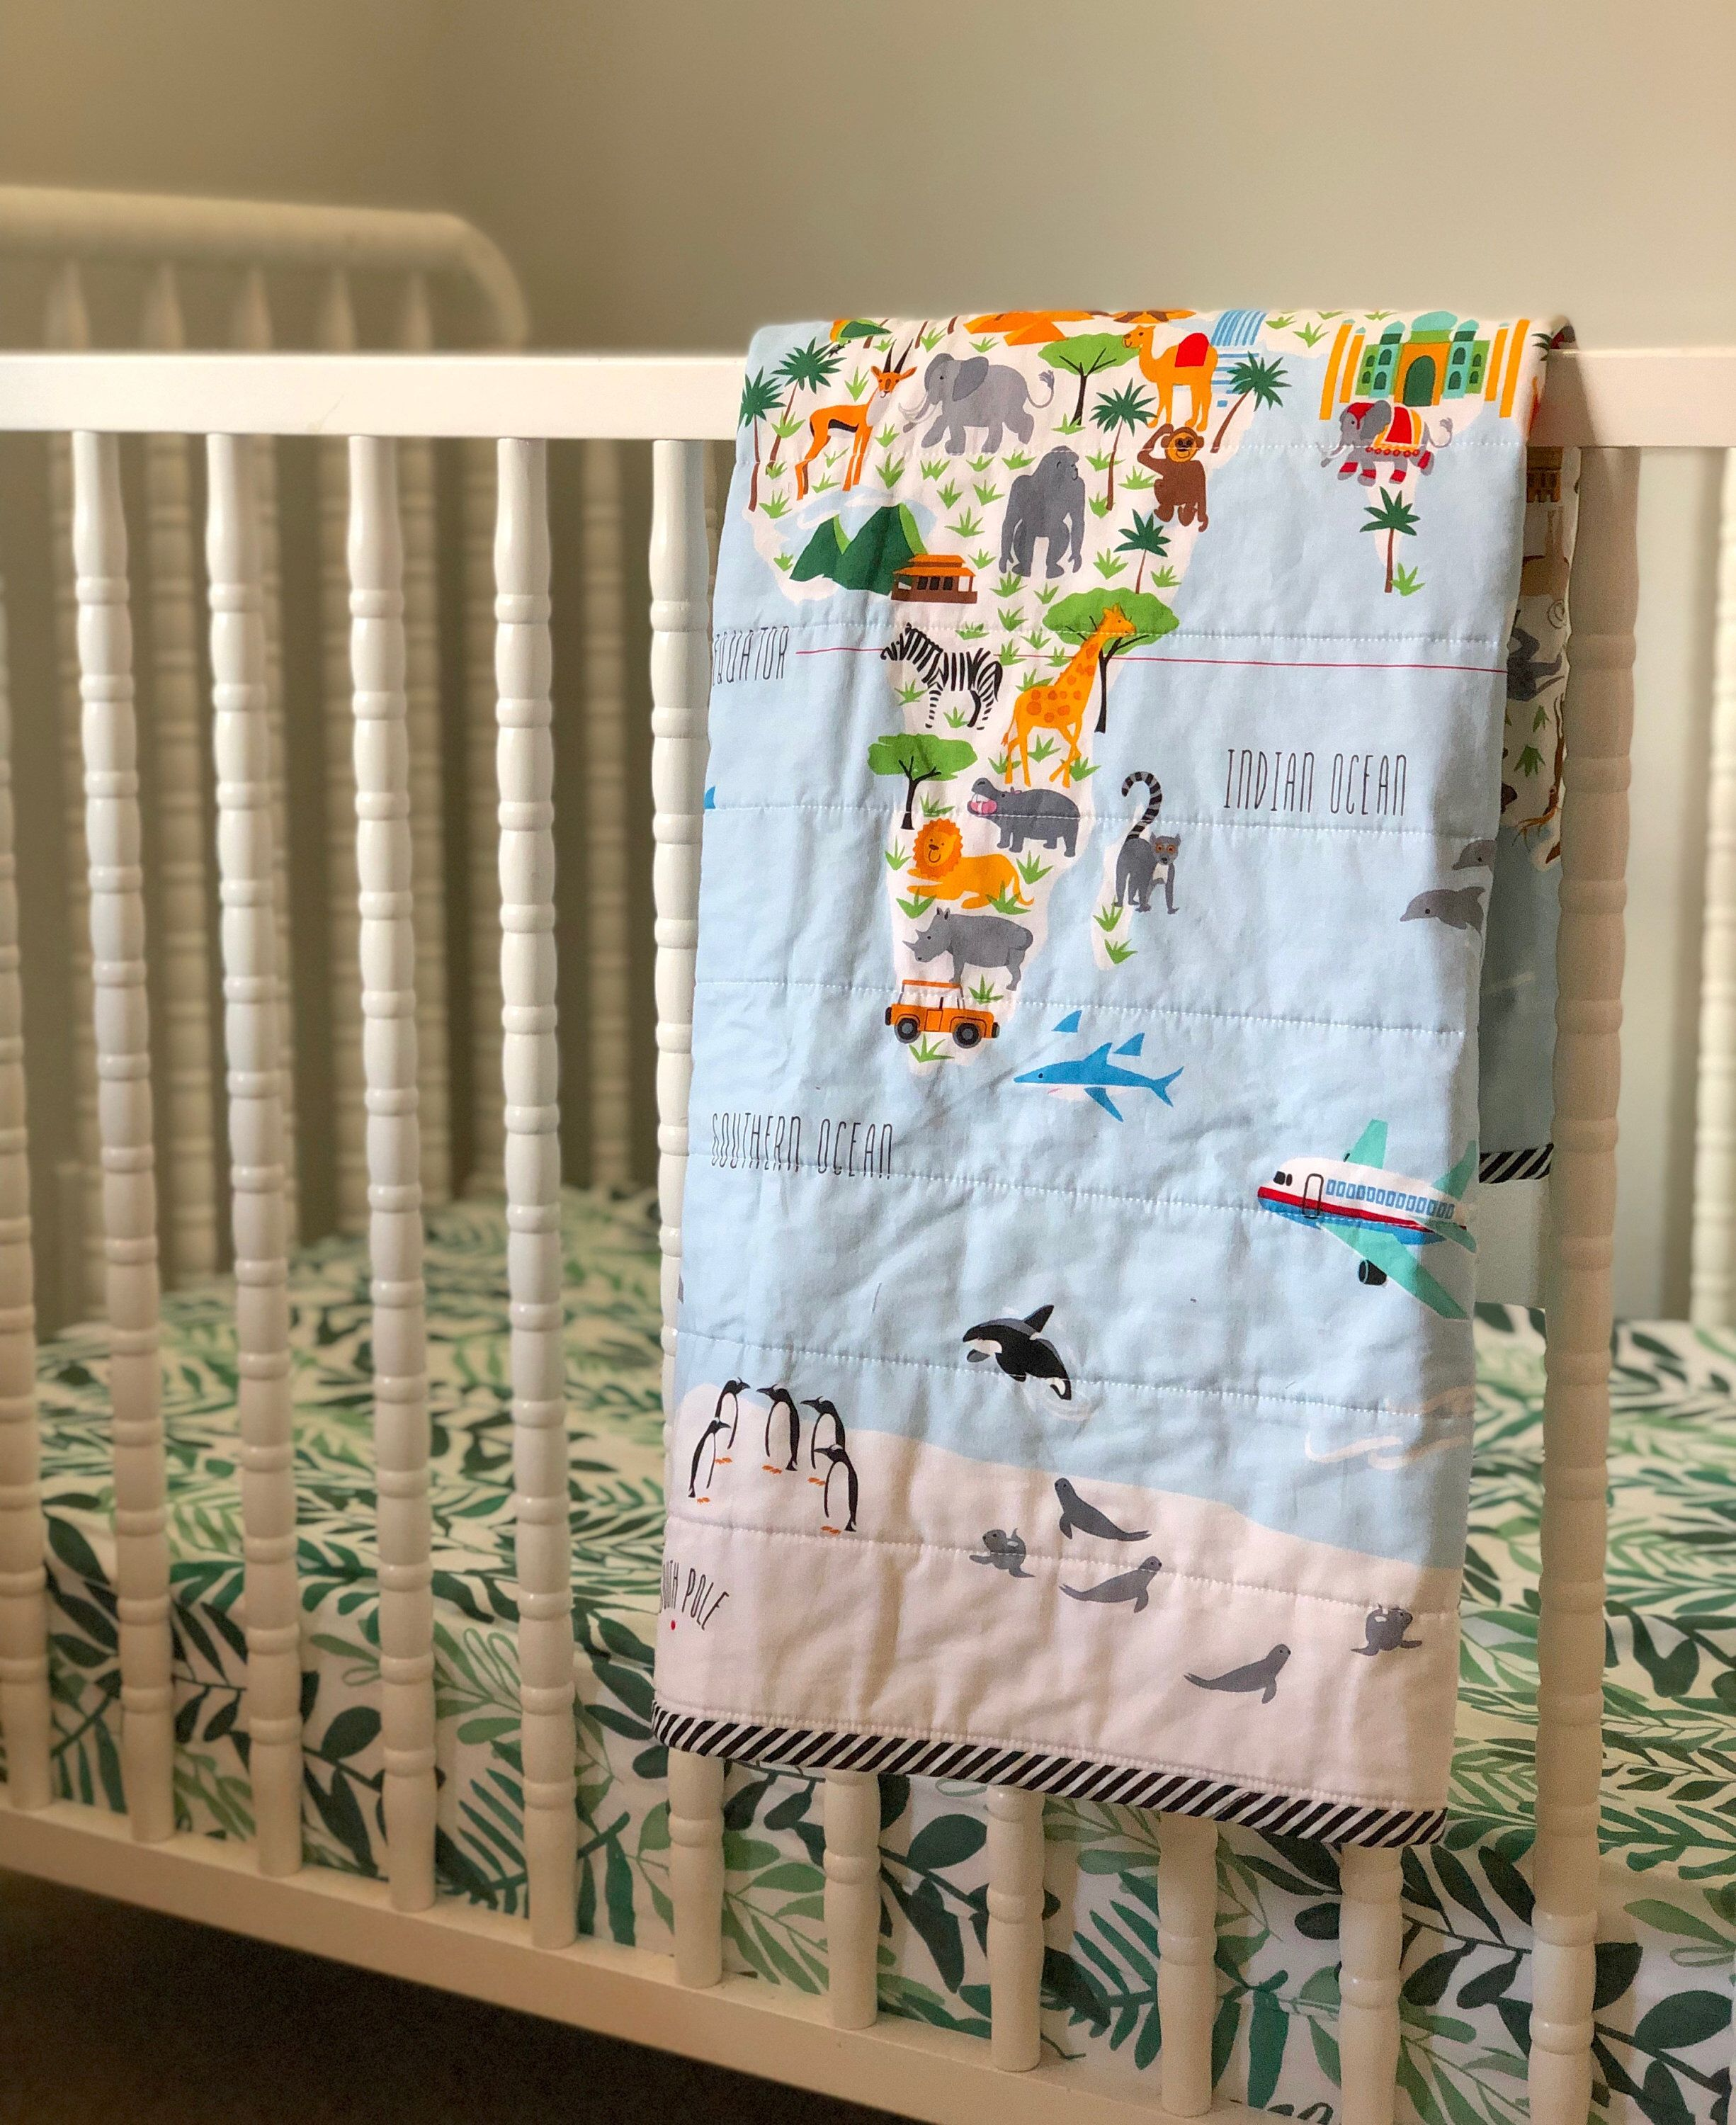 World Map Baby Quilt | Toddler Quilt | Gender Neutral Baby ... on world map silhouette cameo, world map headboard, world map side table, world map coverlet, world map women's clothes, world map bedding set,